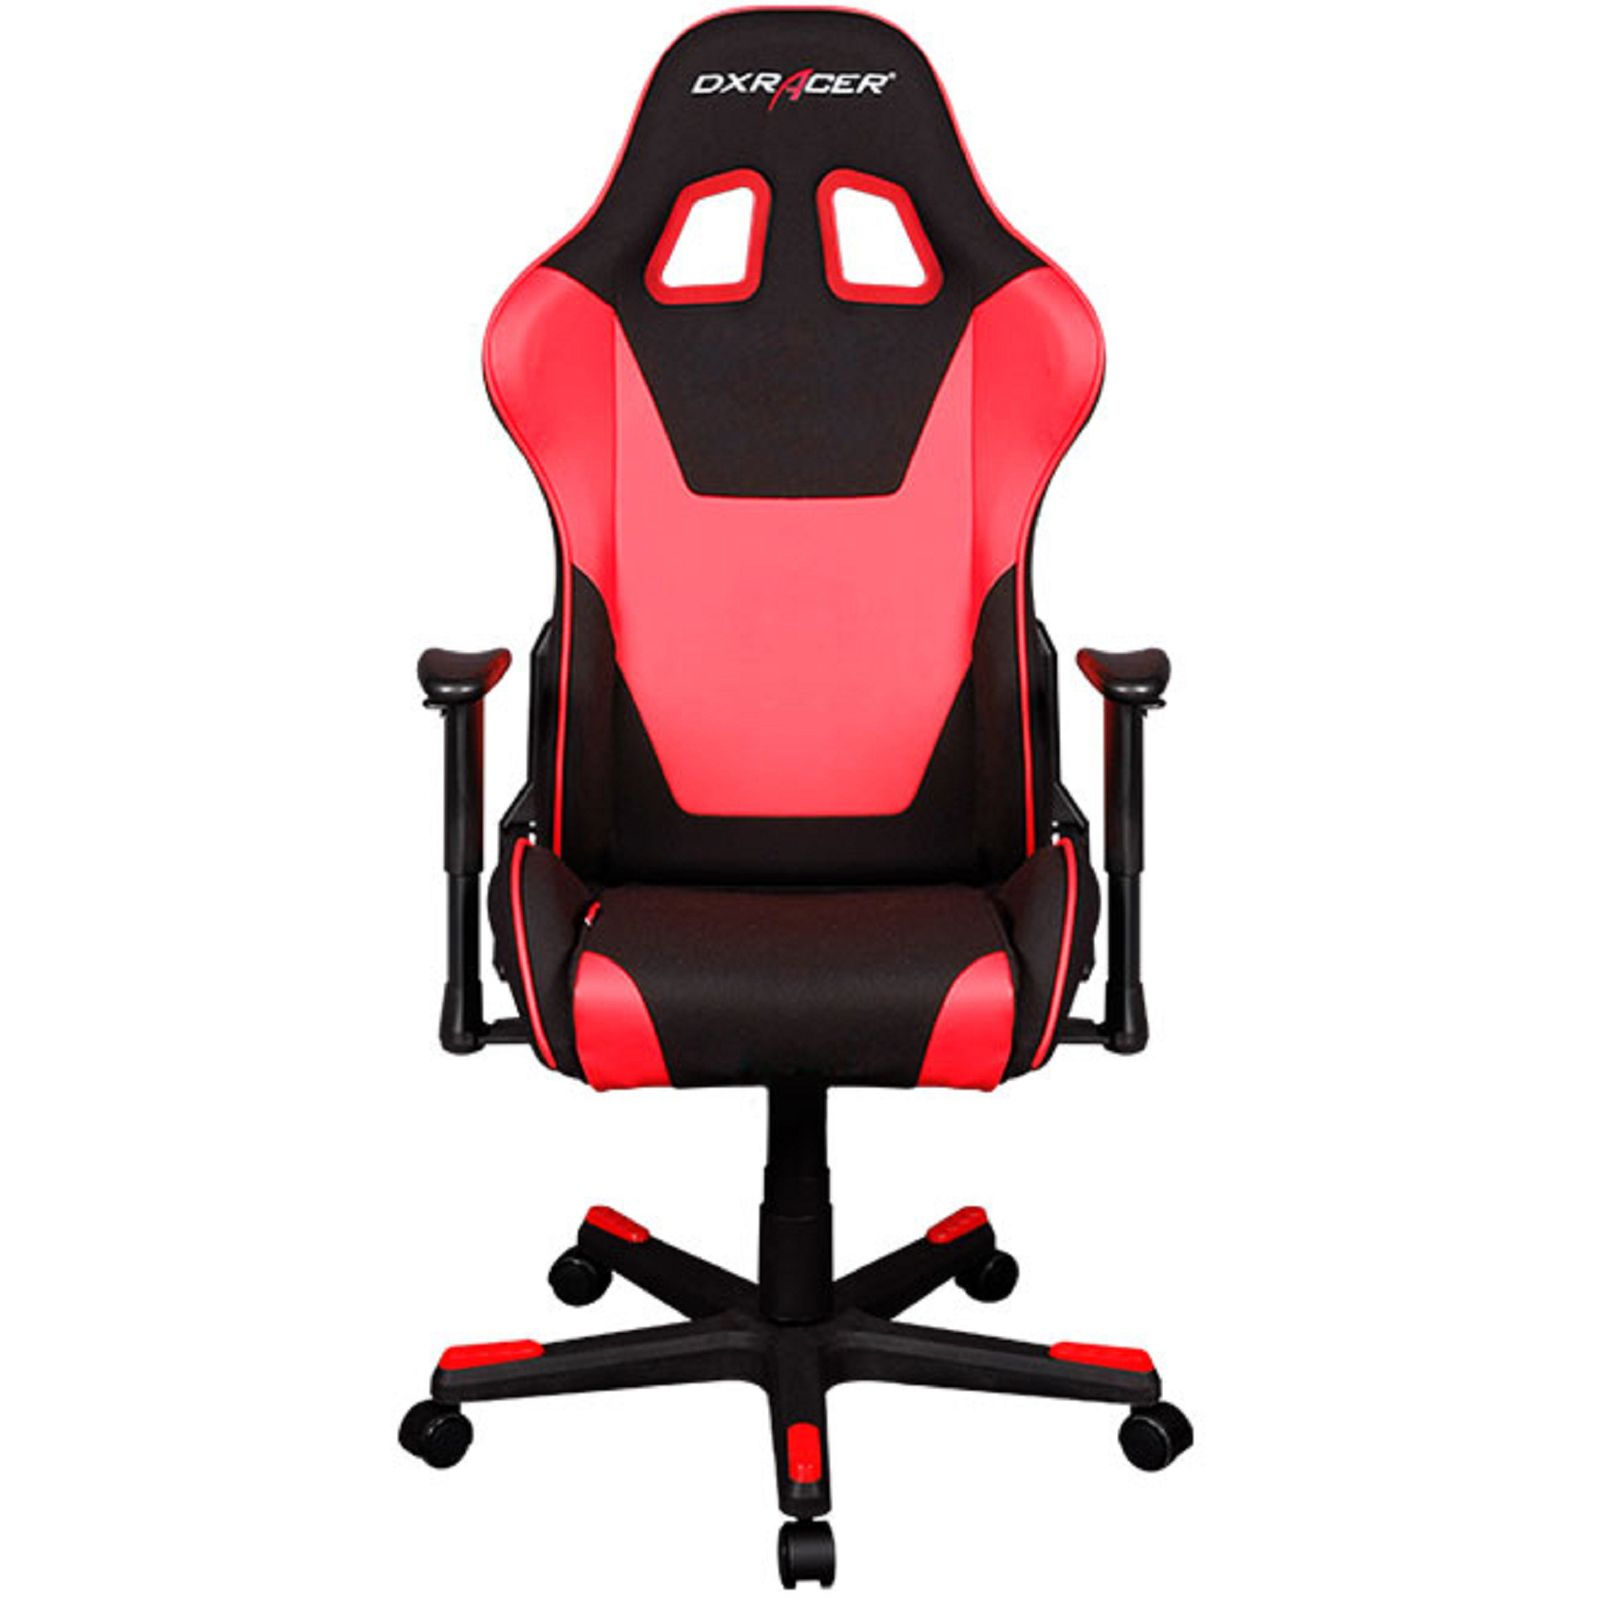 DXRacer OH FD101 NR High Back puter Chair Strong Mesh PU Chairs